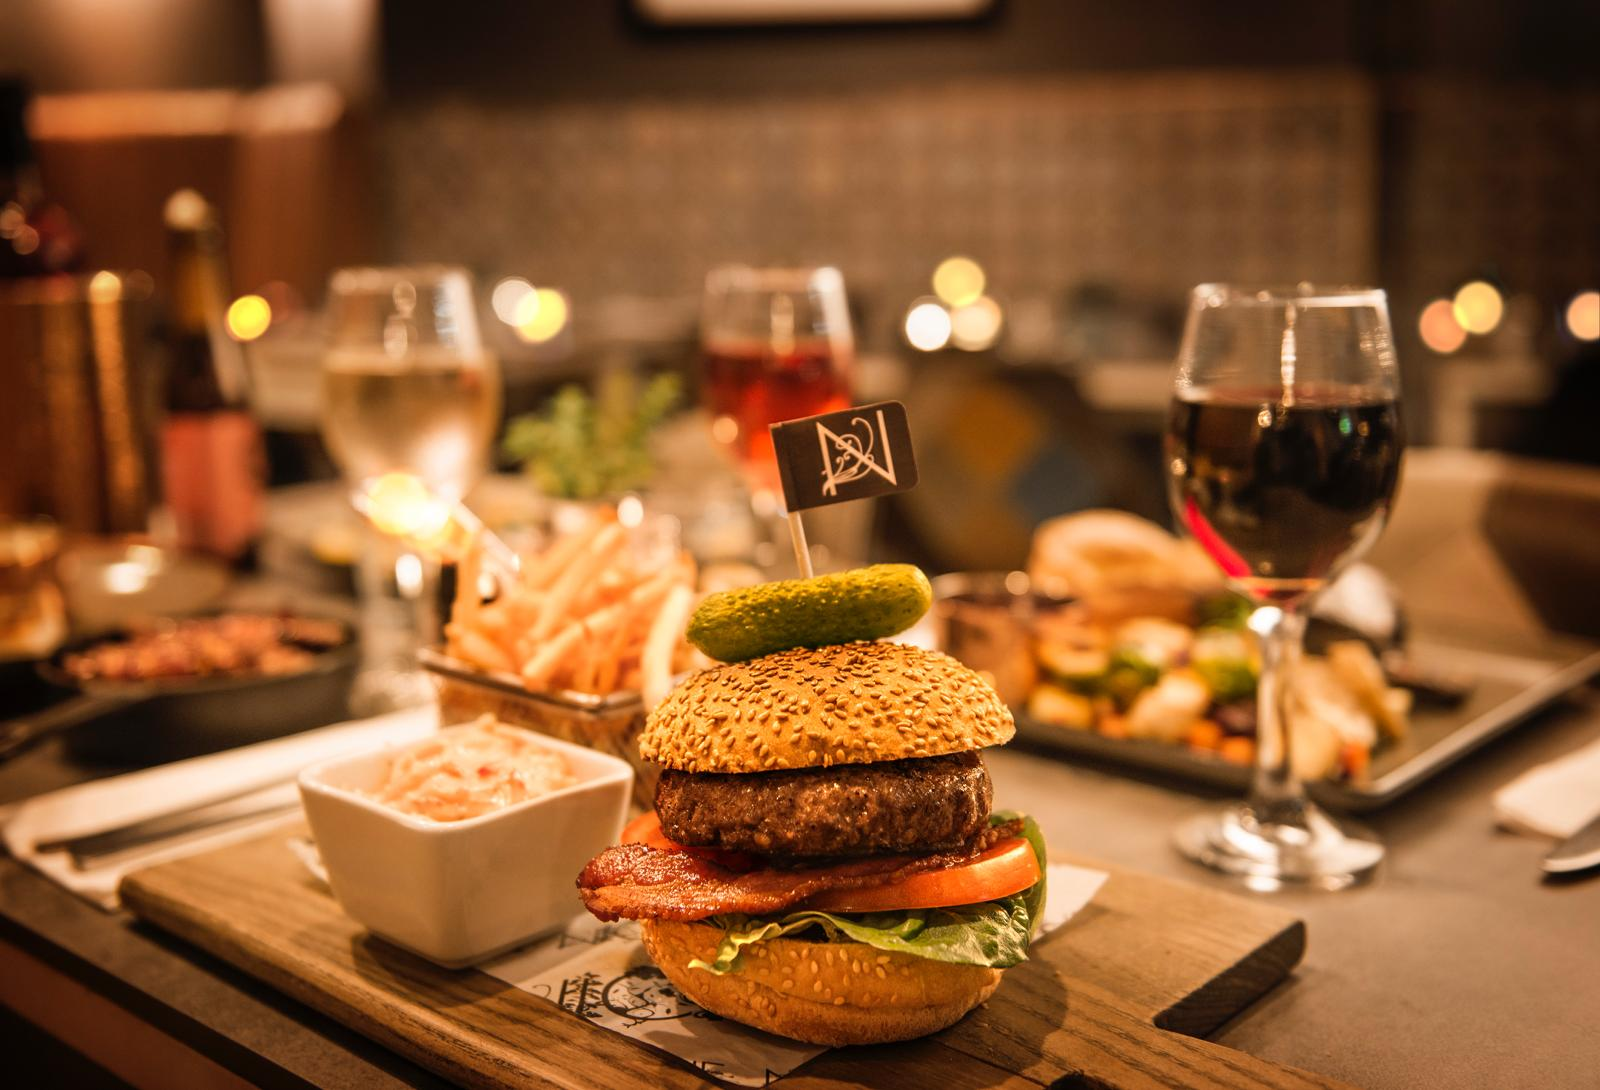 gluten free burgers in London, gluten free burger in london, gluten free burgers in london, best gluten free burger london, gluten-free burger in London, gluten free burger london, gluten free burgers london